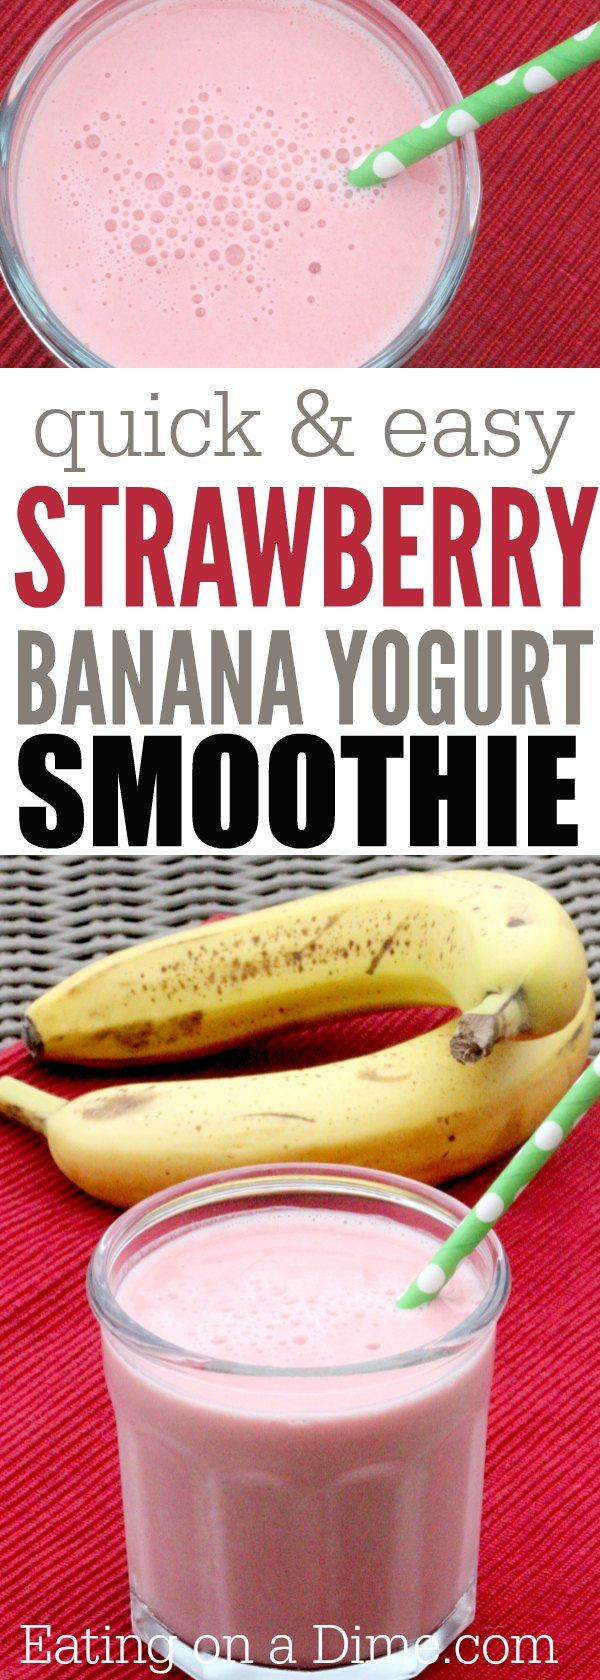 Healthy Smoothie Recipes With Yogurt  17 Best ideas about Strawberry Banana Smoothie on